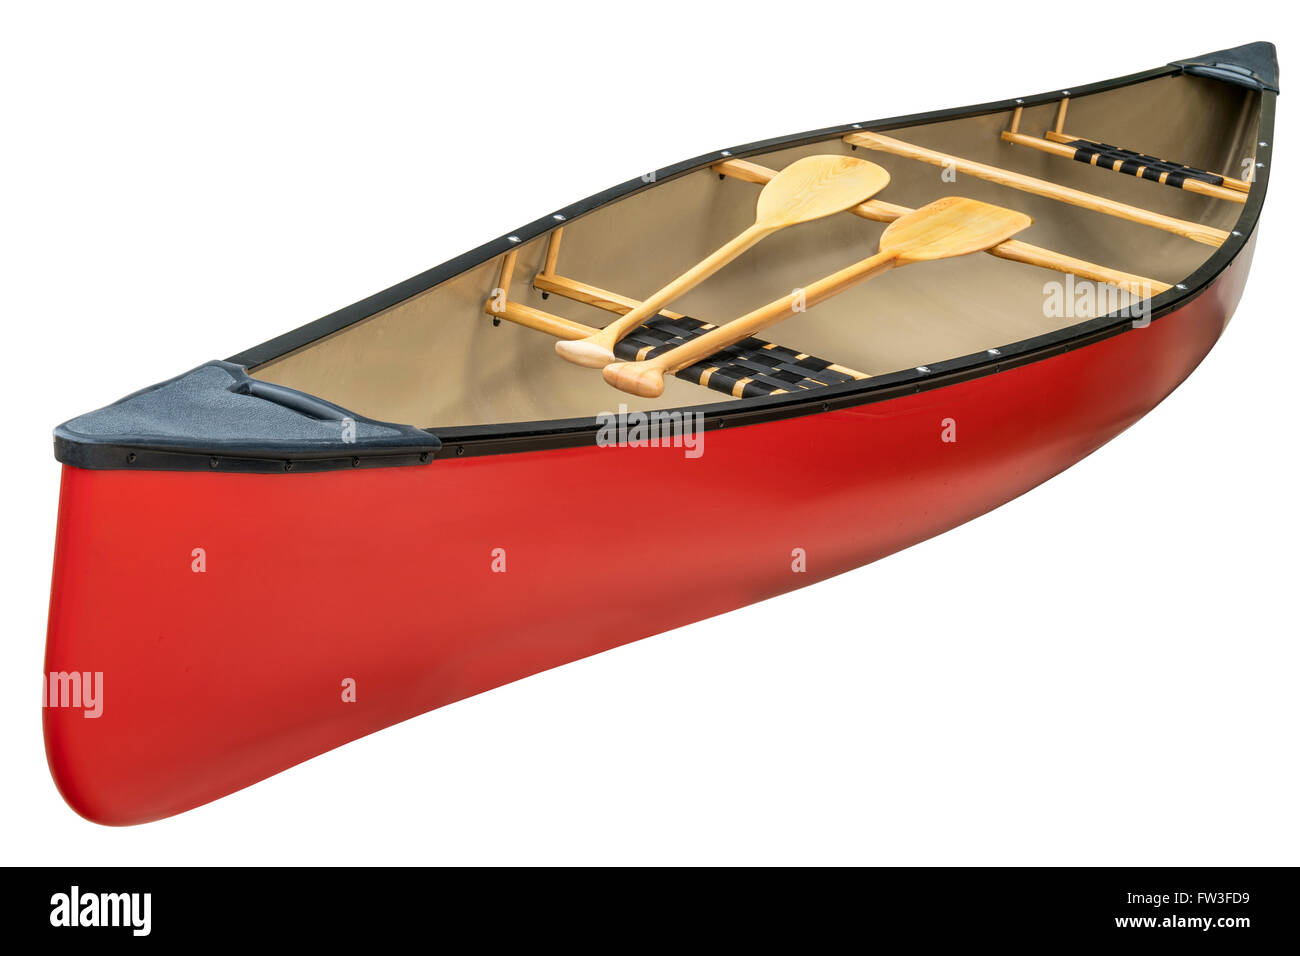 red canoe with a pair of wooden paddles,  isolated on white - Stock Image